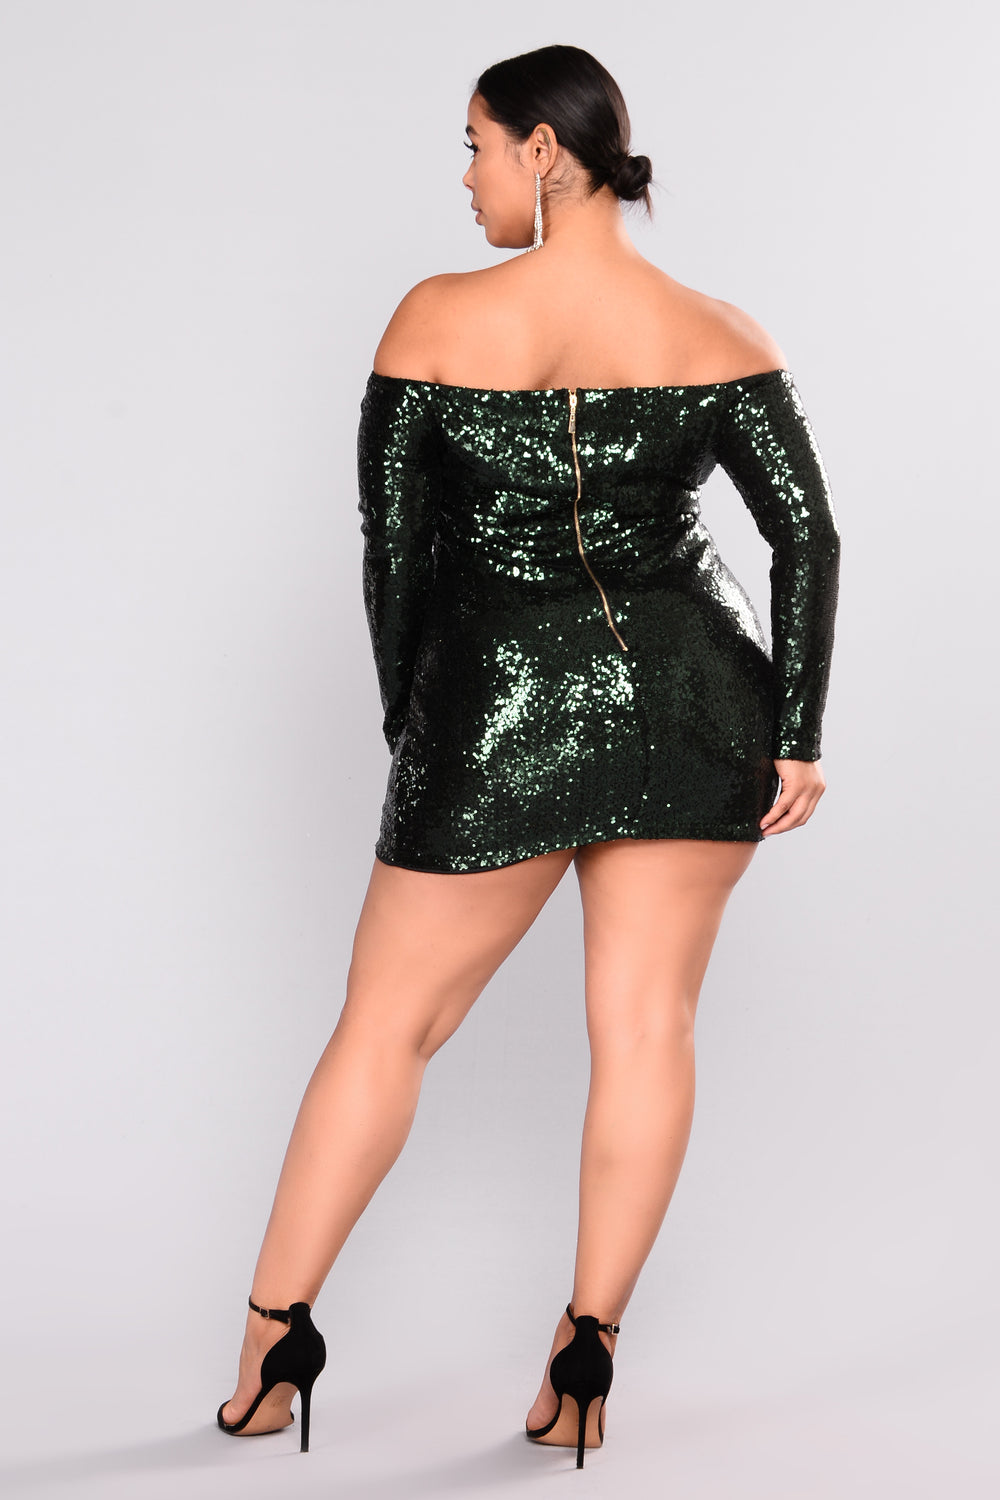 Are You Sequin Serious Dress - Hunter Green